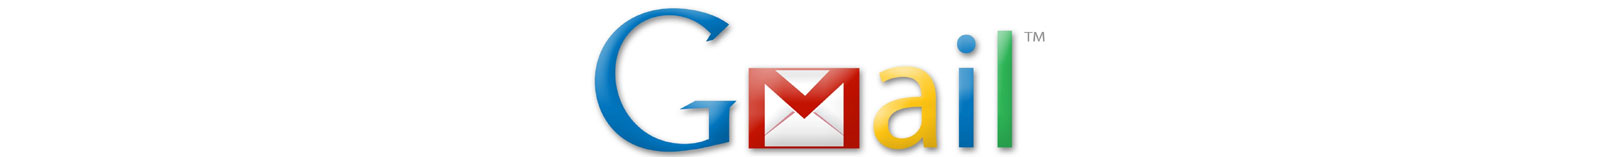 GMail Fax to email